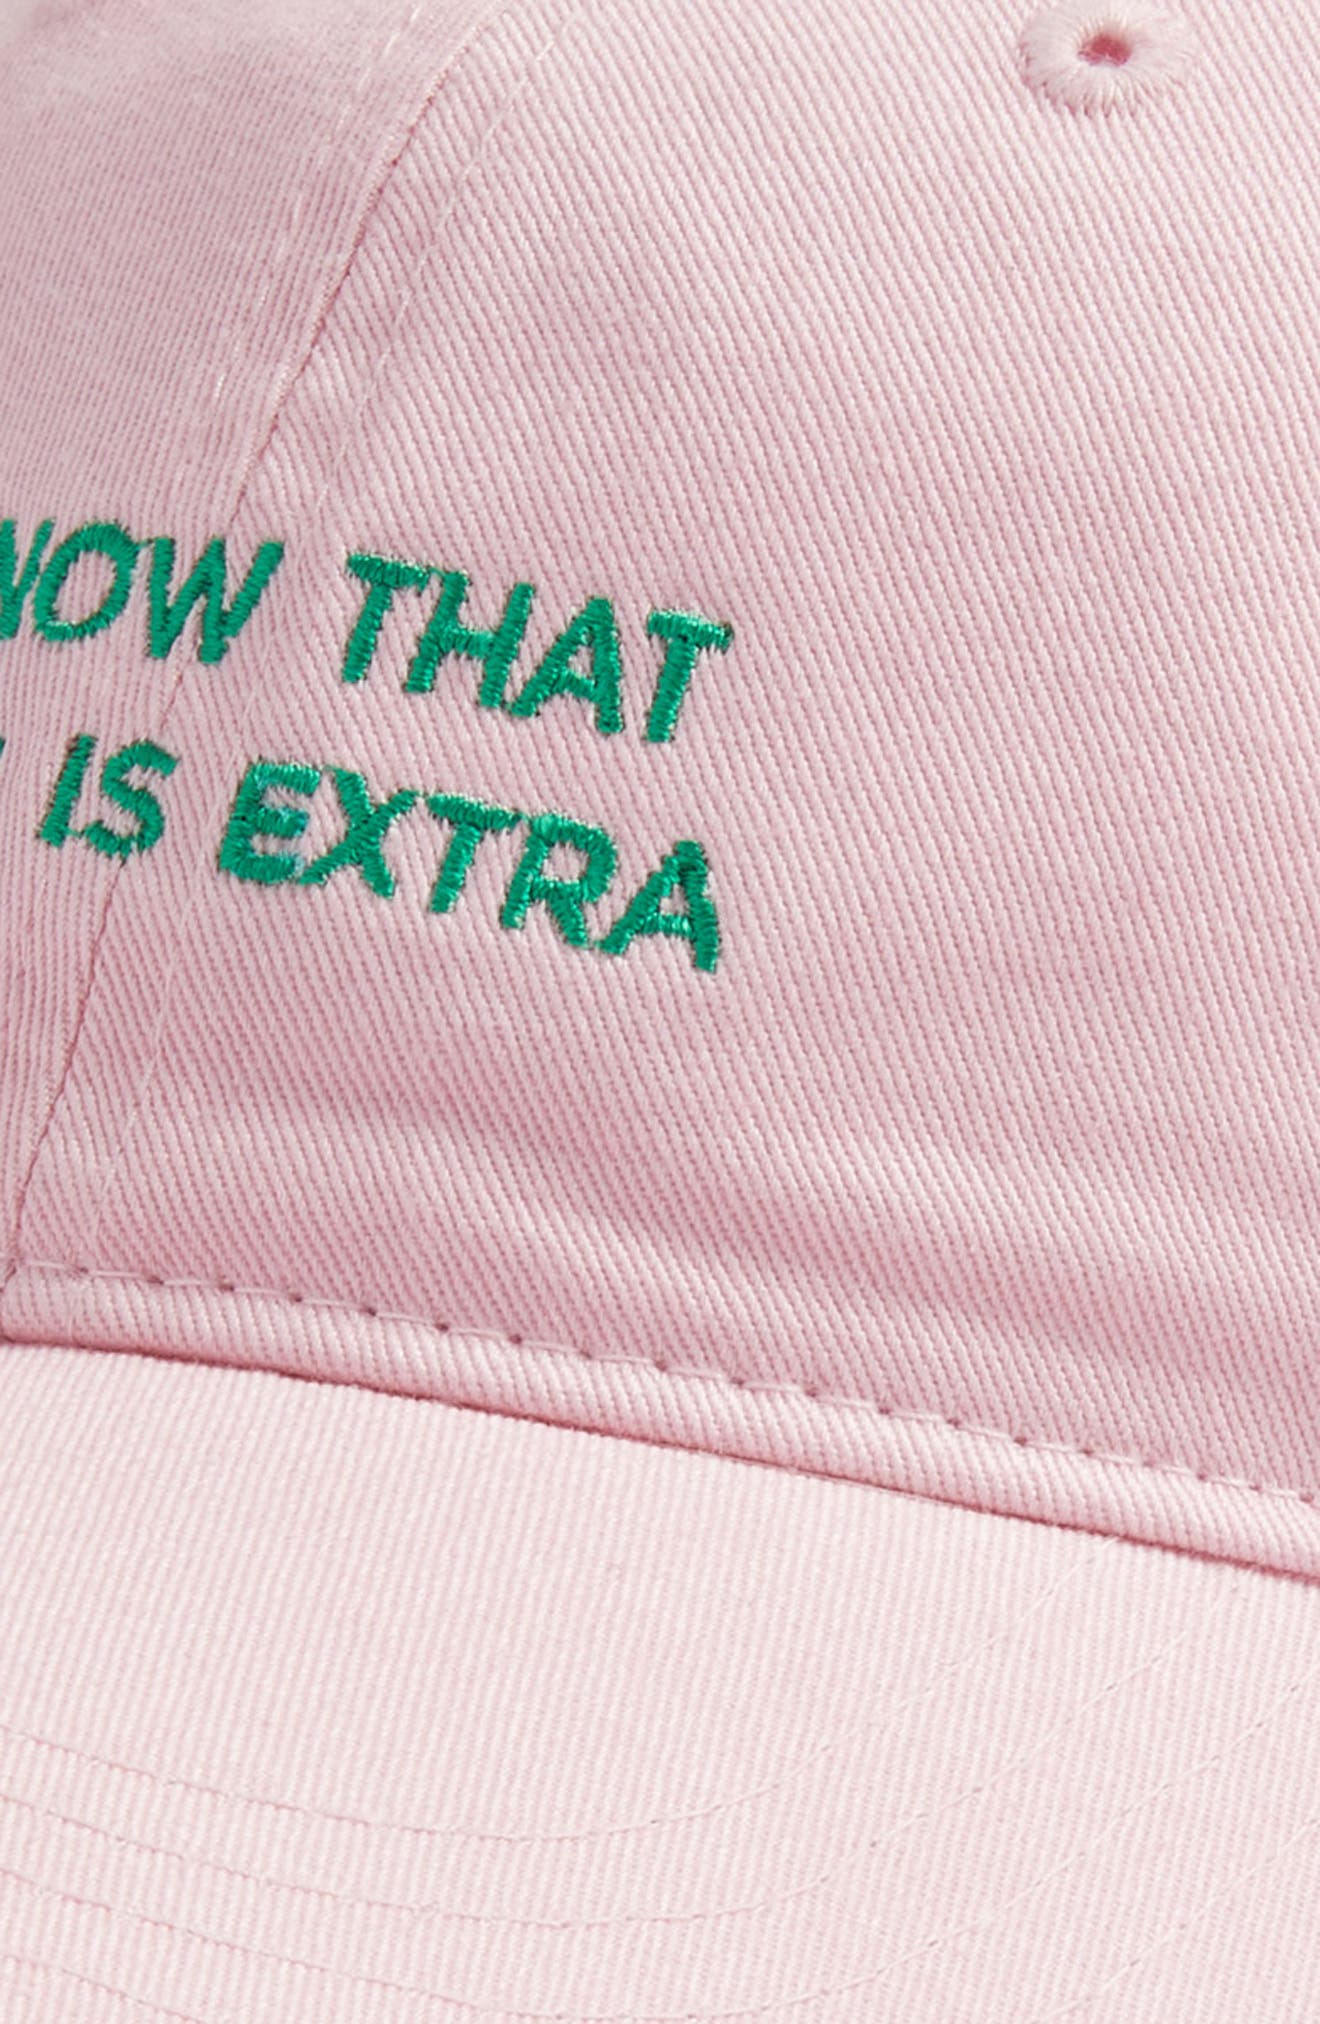 'I Know That Guac Is Extra' Cap,                             Alternate thumbnail 3, color,                             Pink